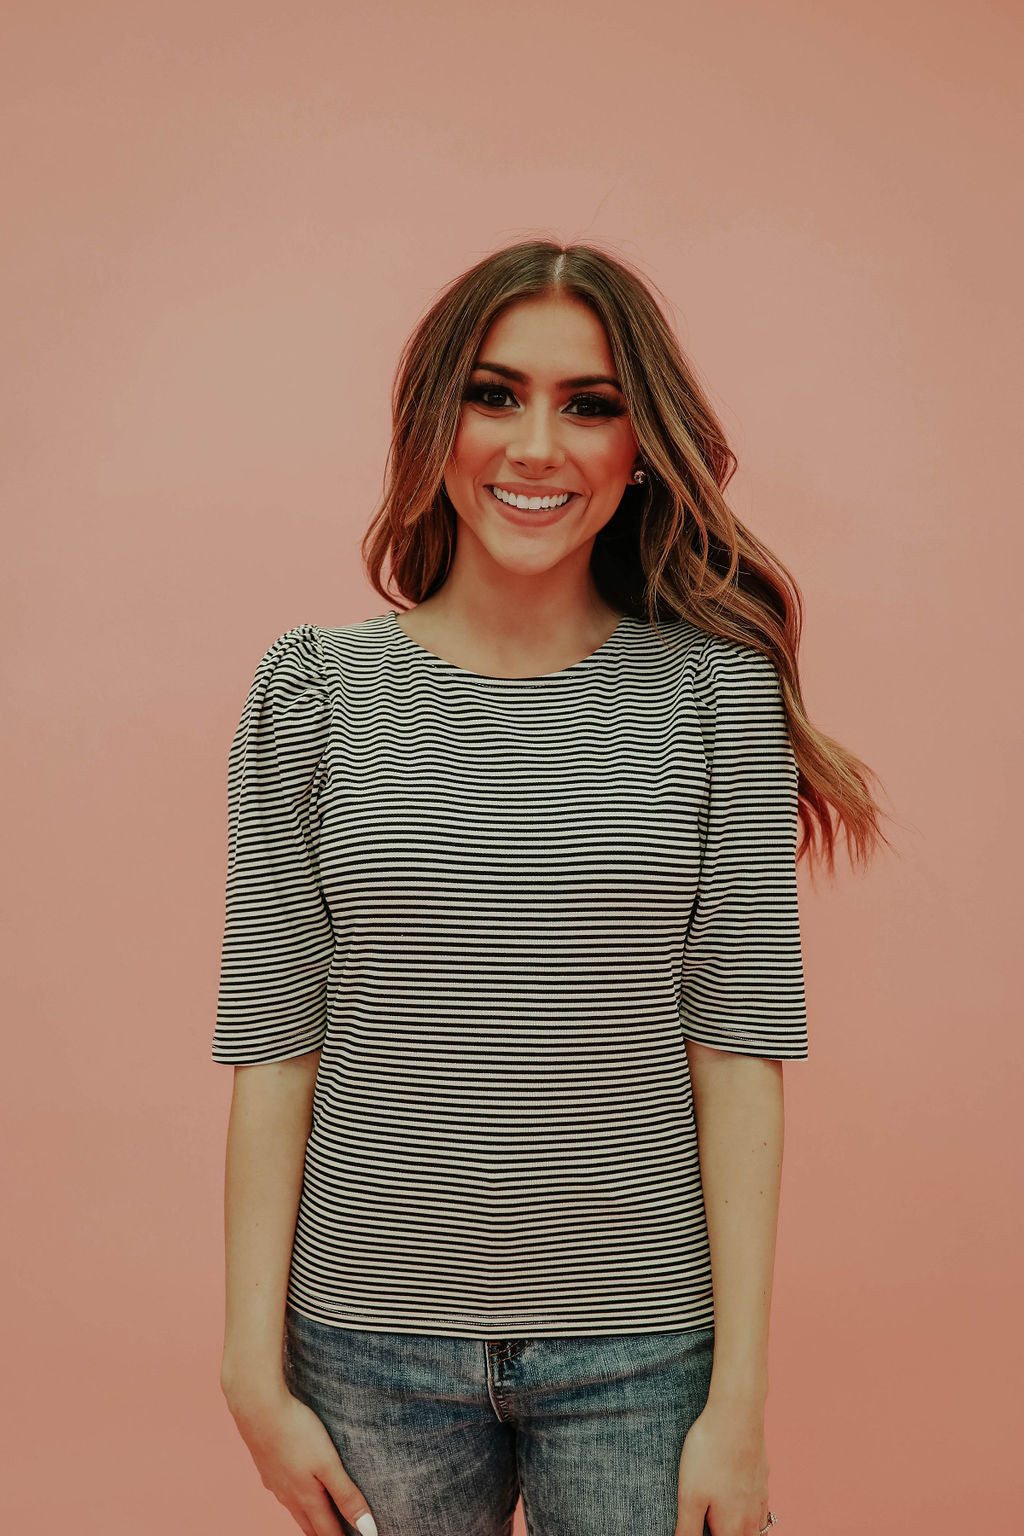 THE POLLEY PUFFED SLEEVE TOP IN BLACK STRIPE